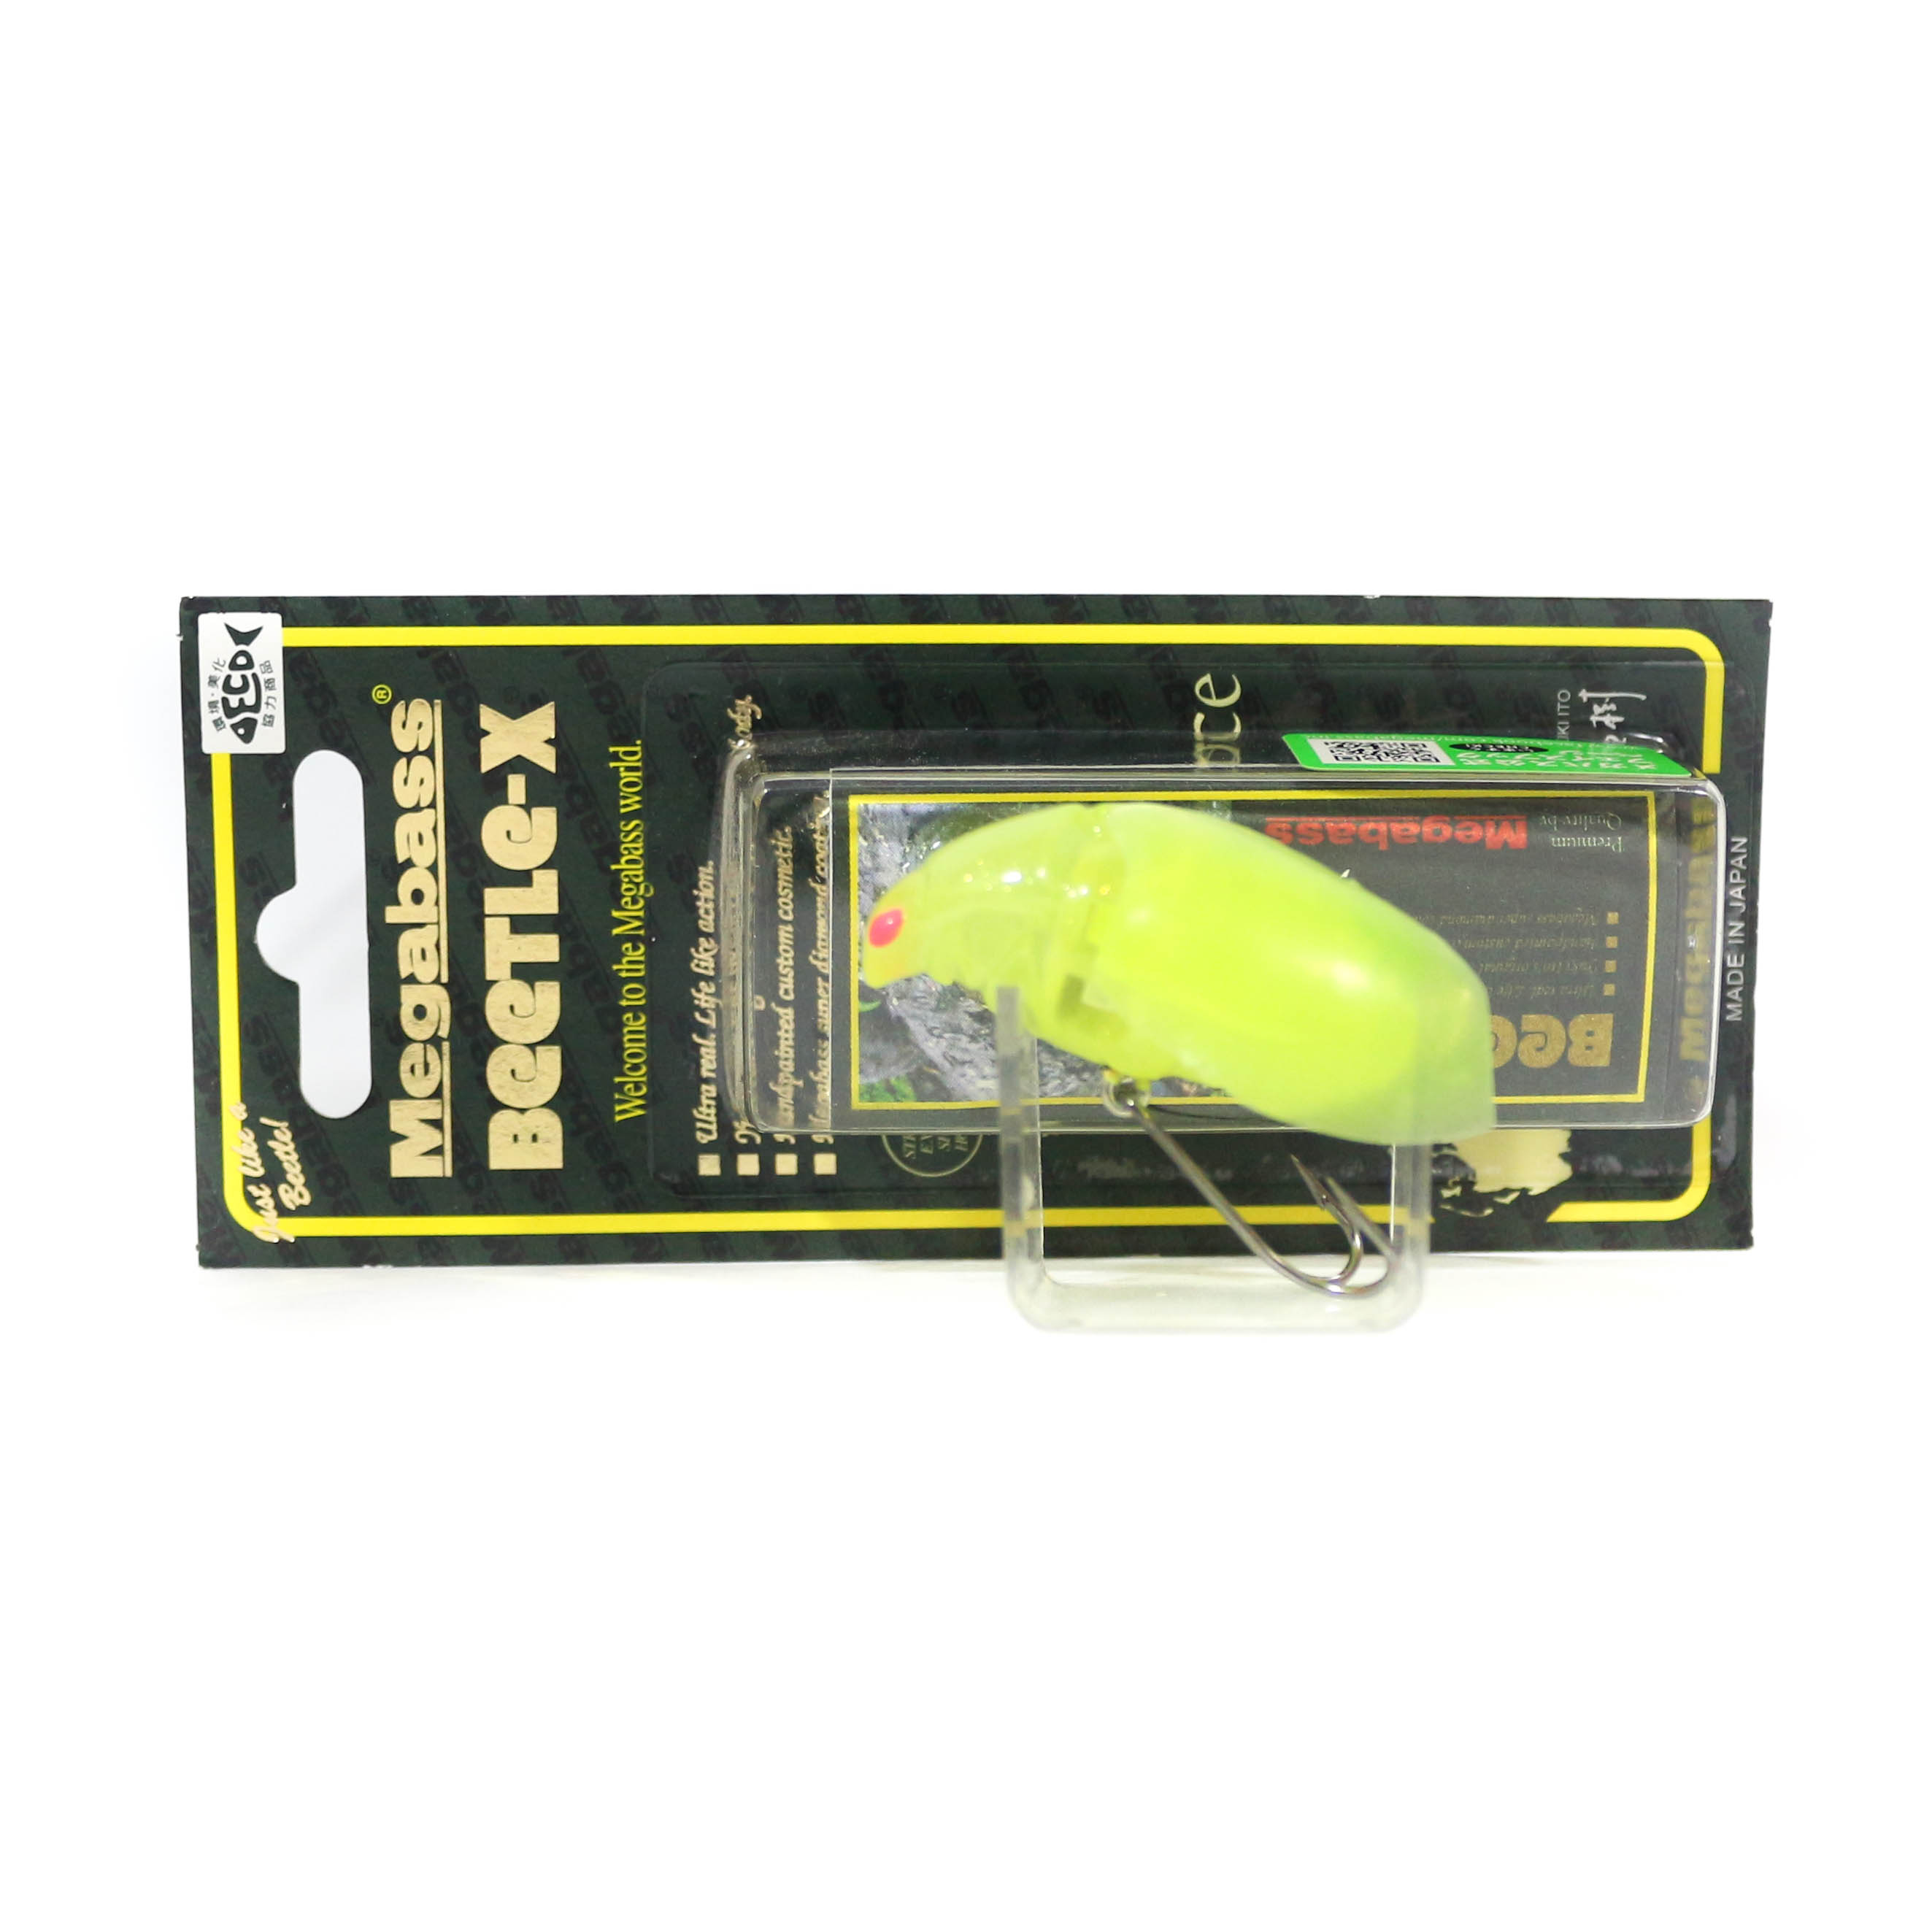 Megabass Beetle X Floating Lure GLX Chart Sylphy (7153)